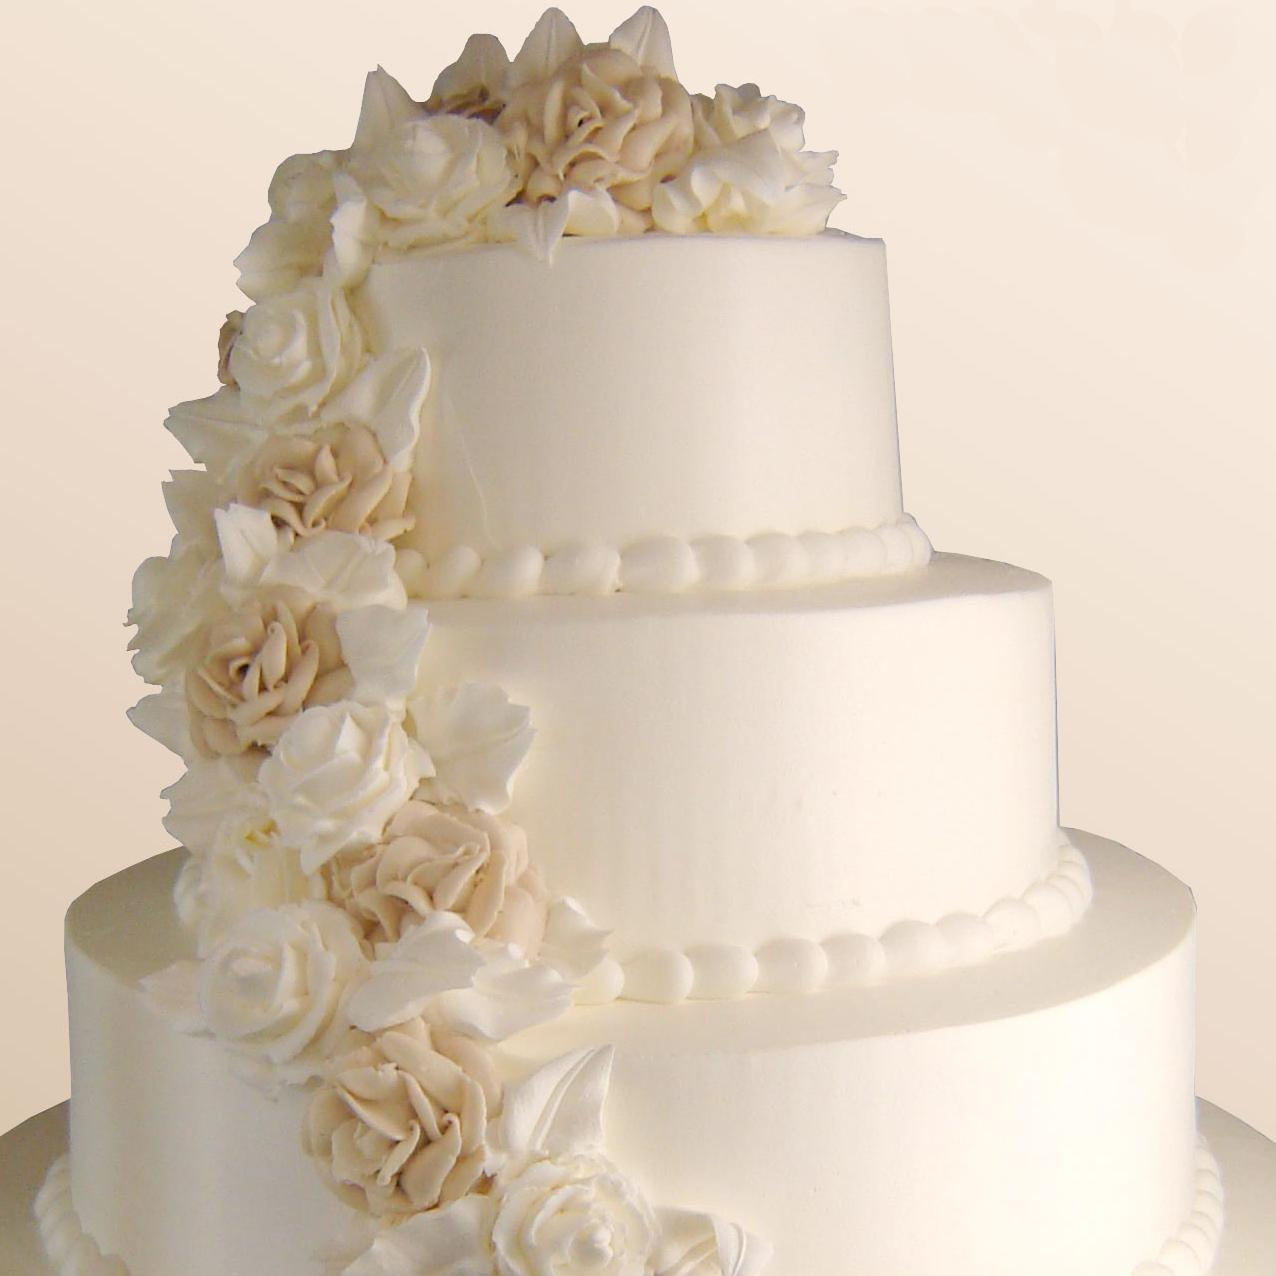 4 Layer Wedding Cake